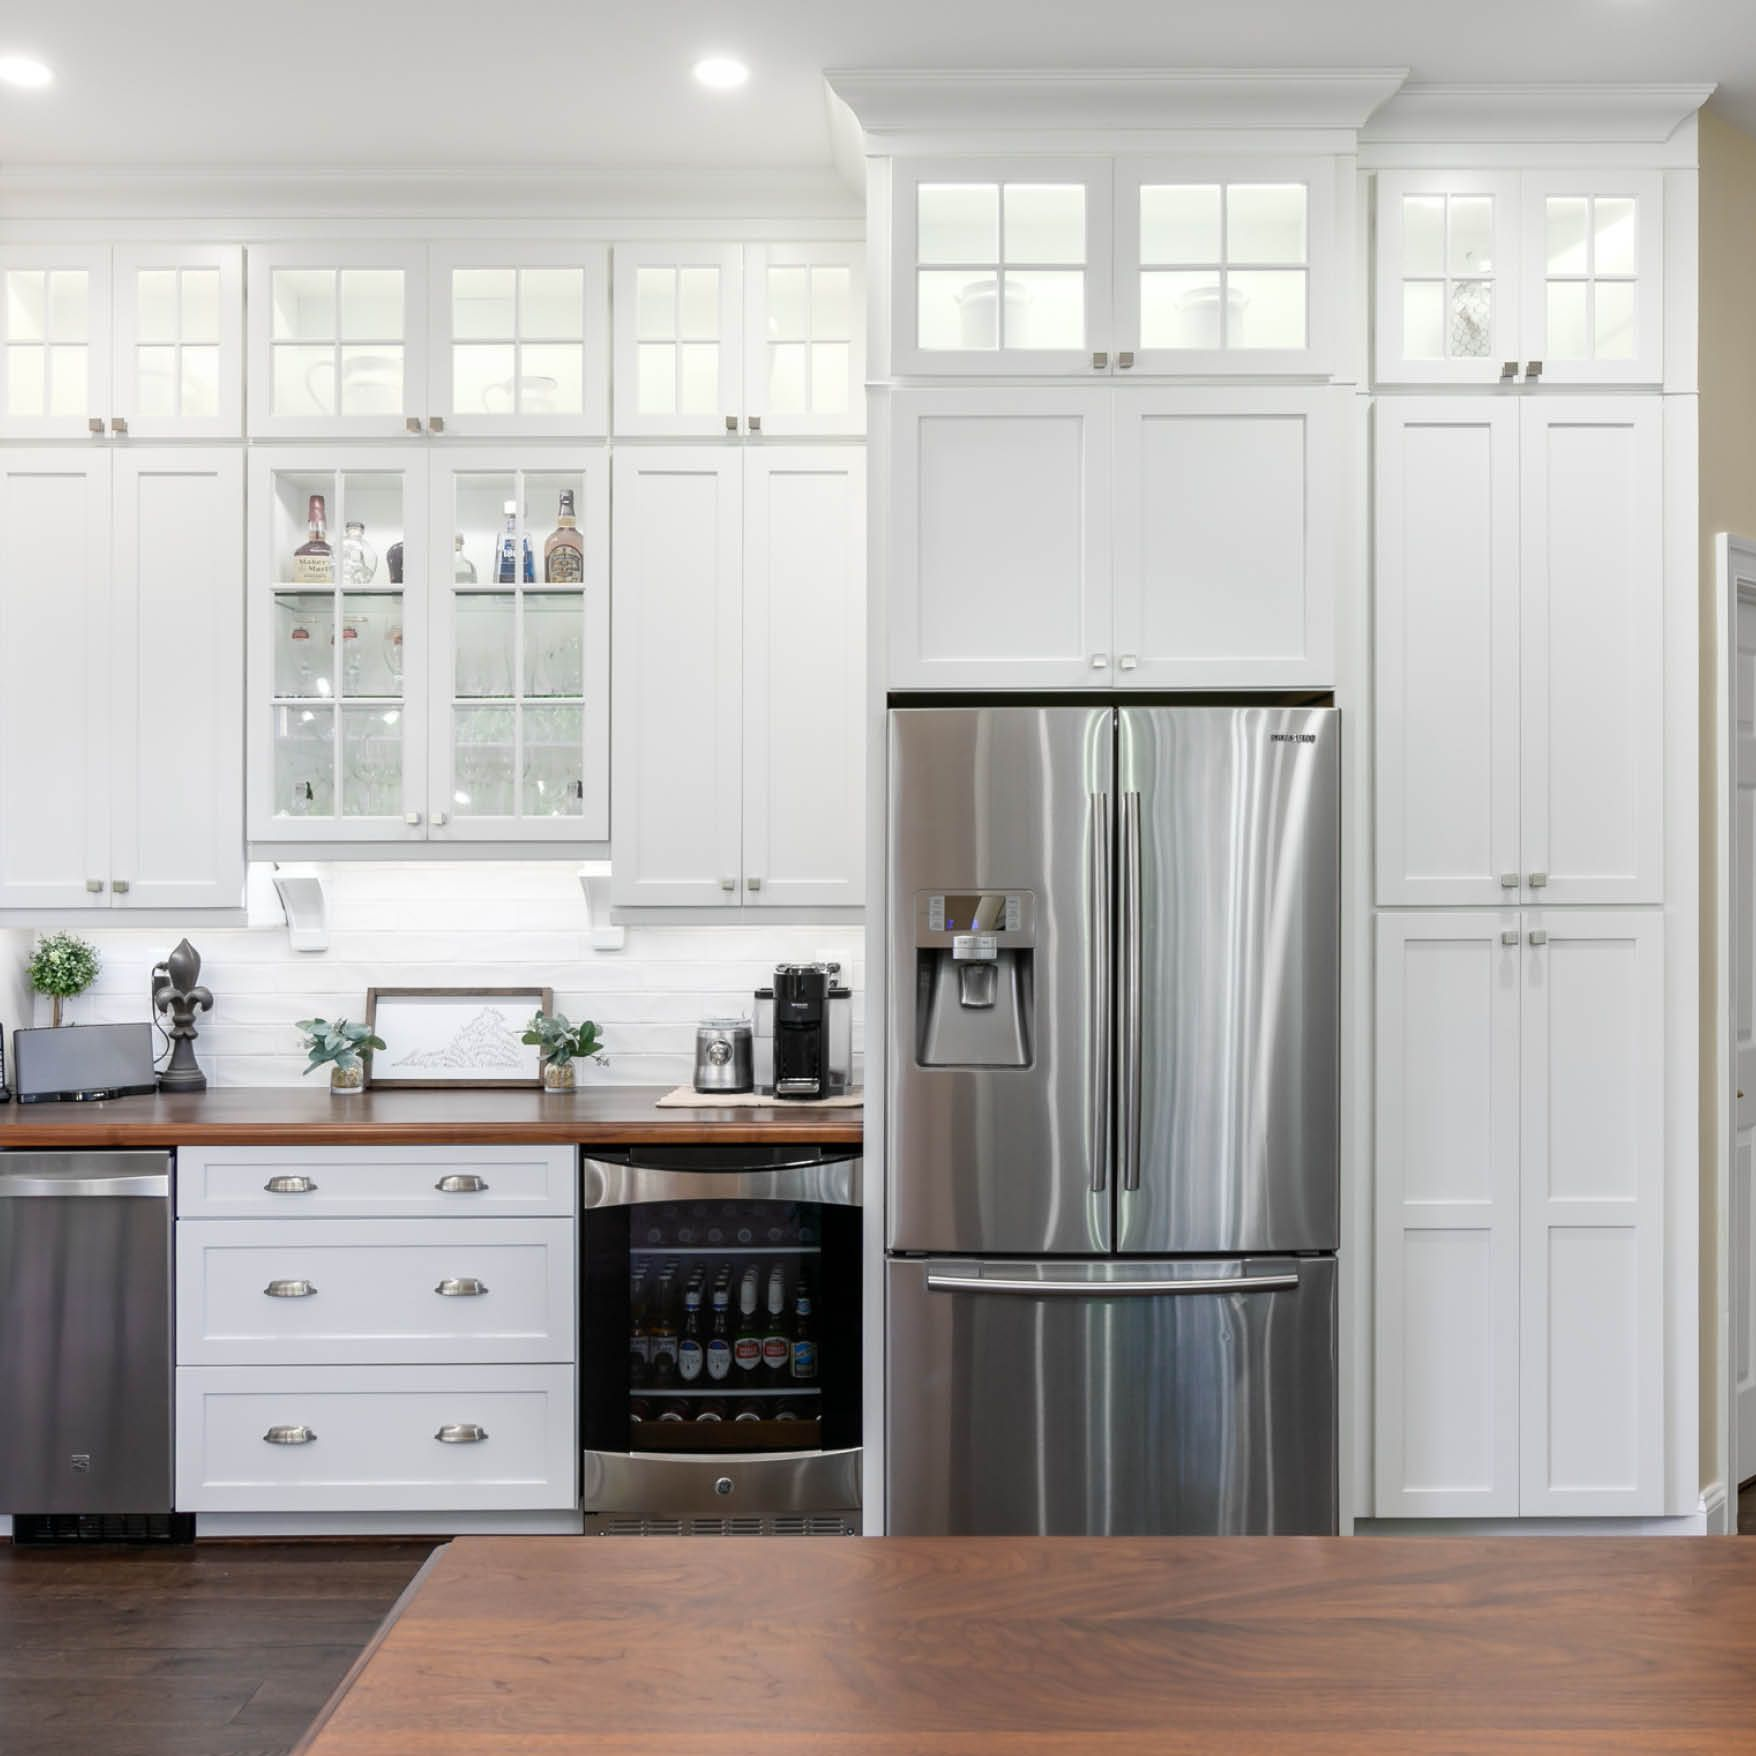 Flaunt Your Style For All To See Glass Kitchen Cabinets Kitchen Remodel Kitchen Linens